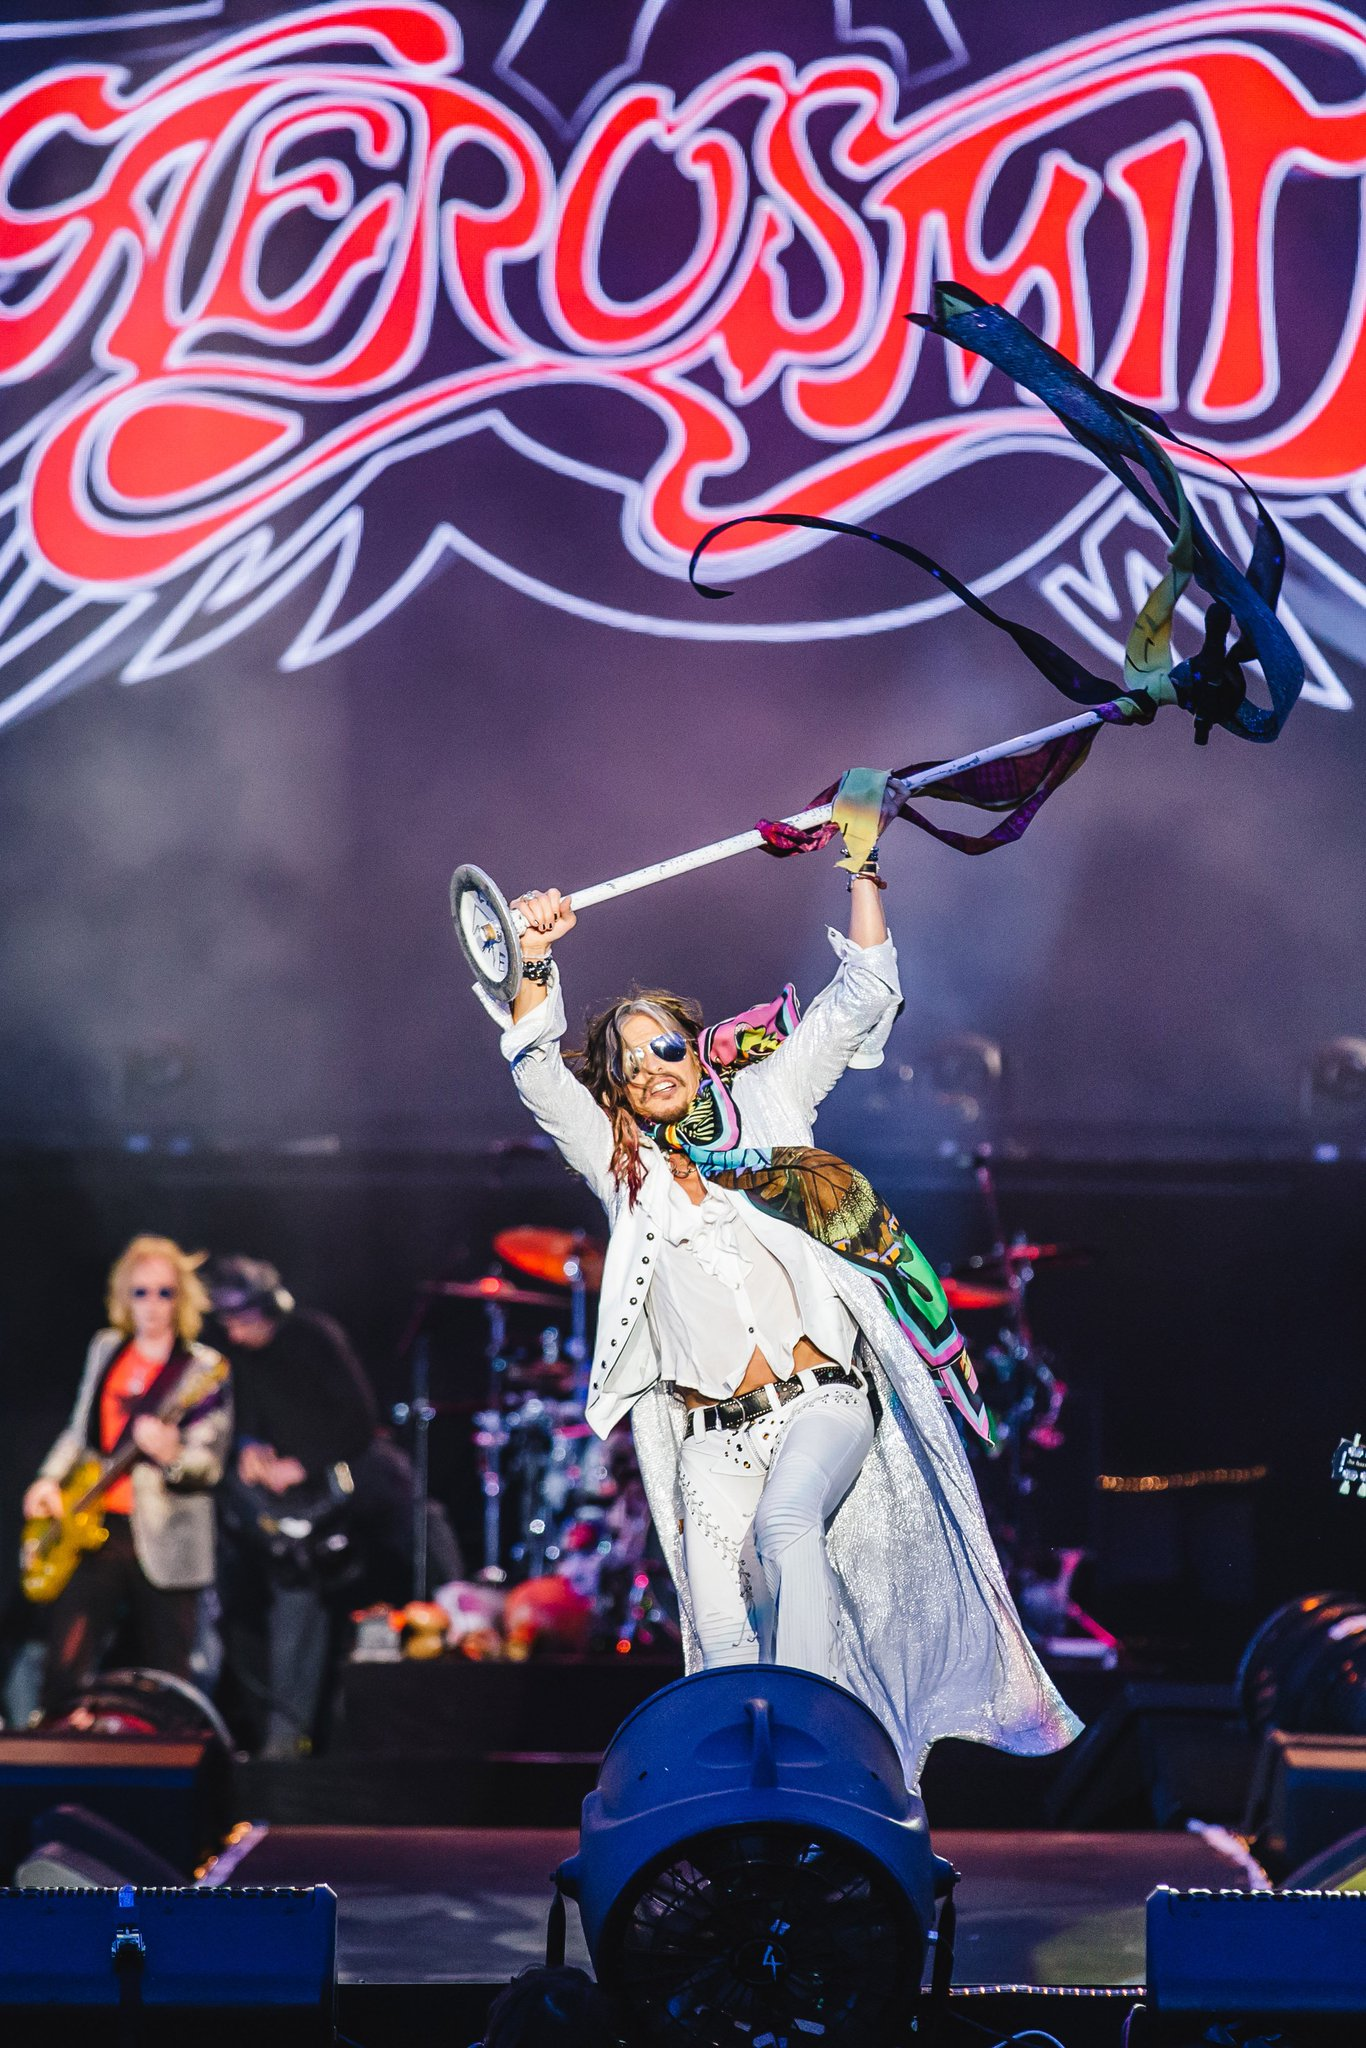 HAPPY BIRTHDAY Steven Tyler! Can\t wait to have you on our stage one LAST TIME to celebrate!